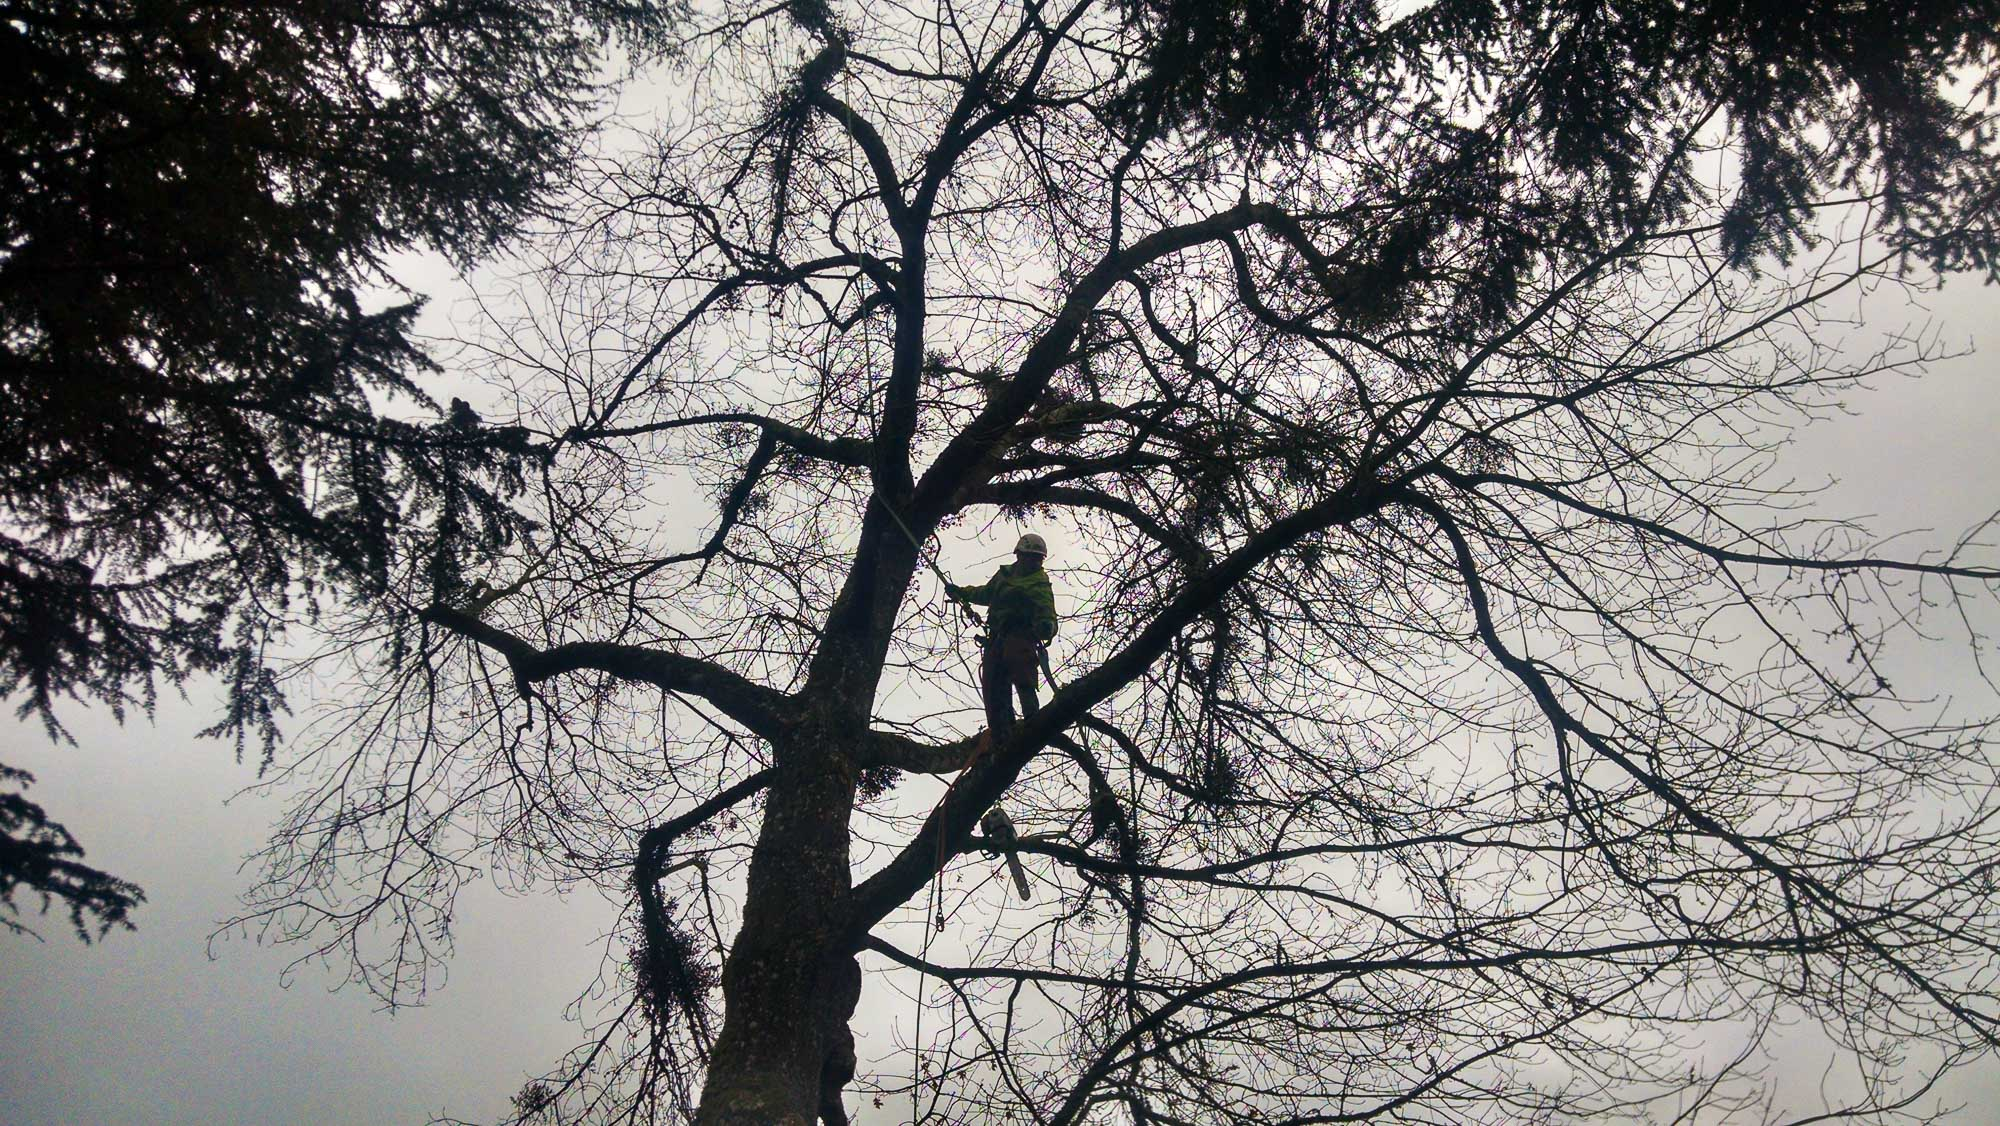 tree-service-removal-pruning-salem-oregon-638